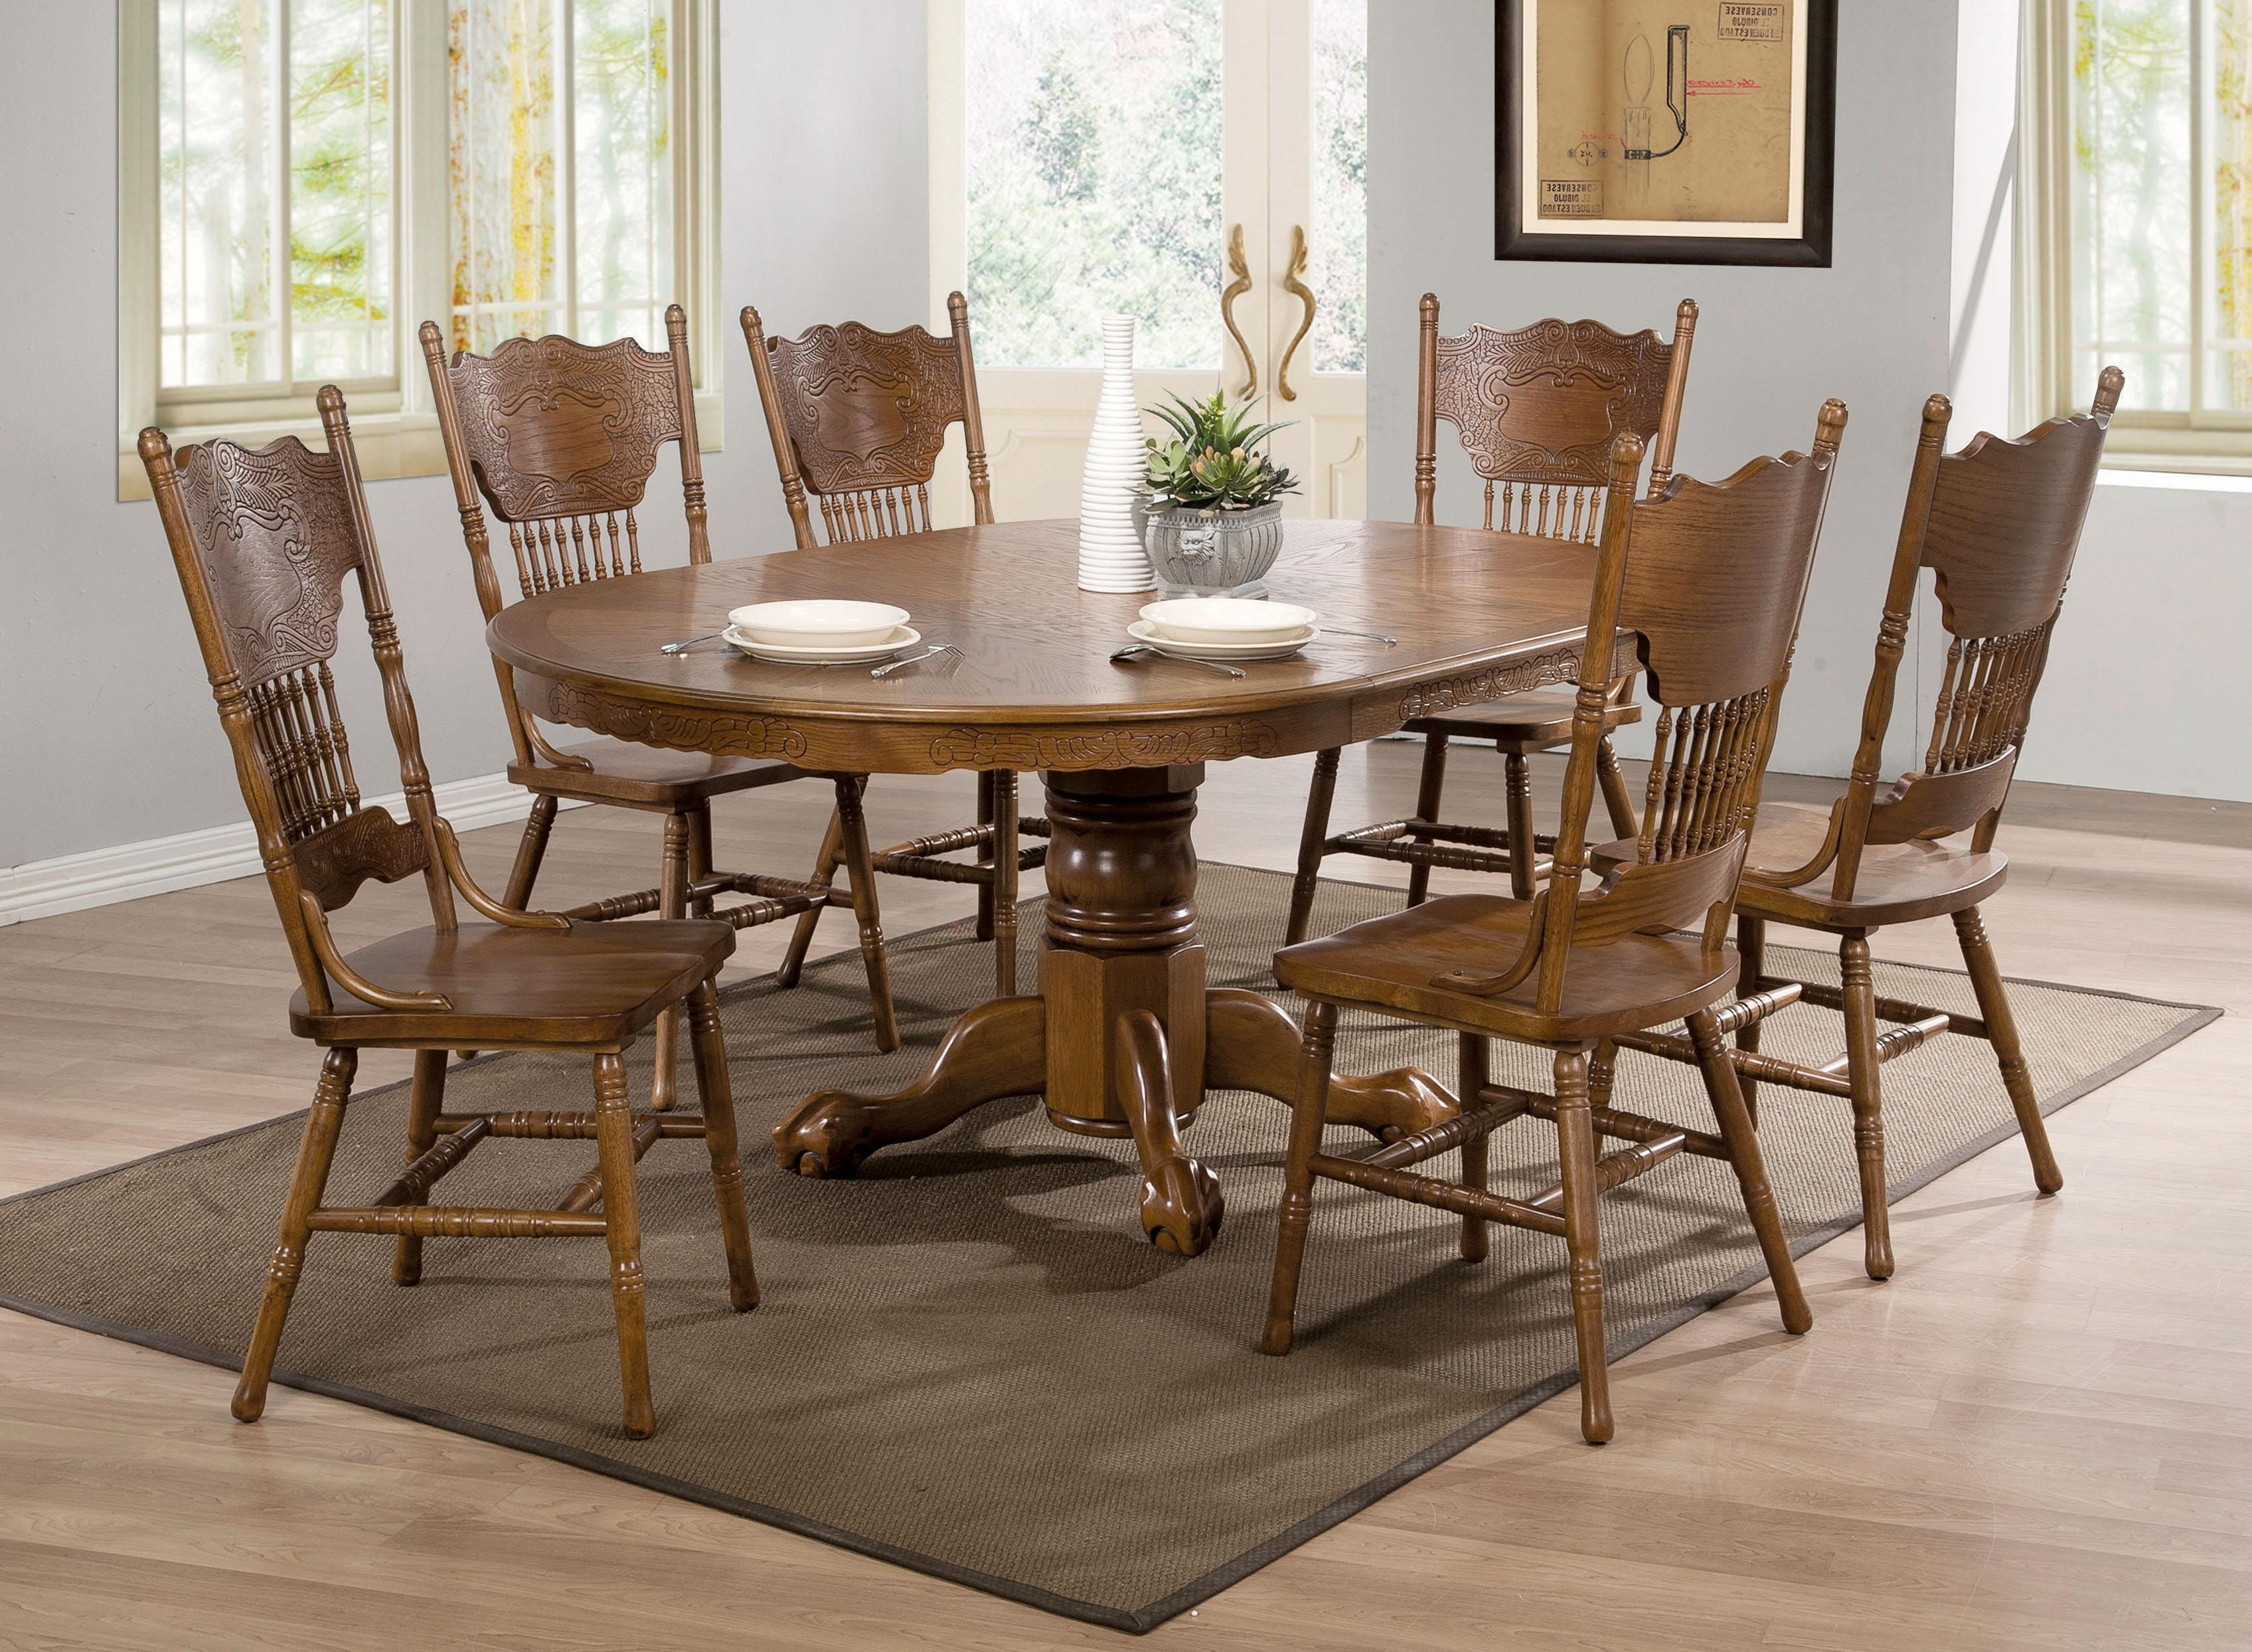 2018 Cheap Oak Dining Sets Inside 27 Beautiful Solid Oak Dining Tables And Chairs – Welovedandelion (View 13 of 25)